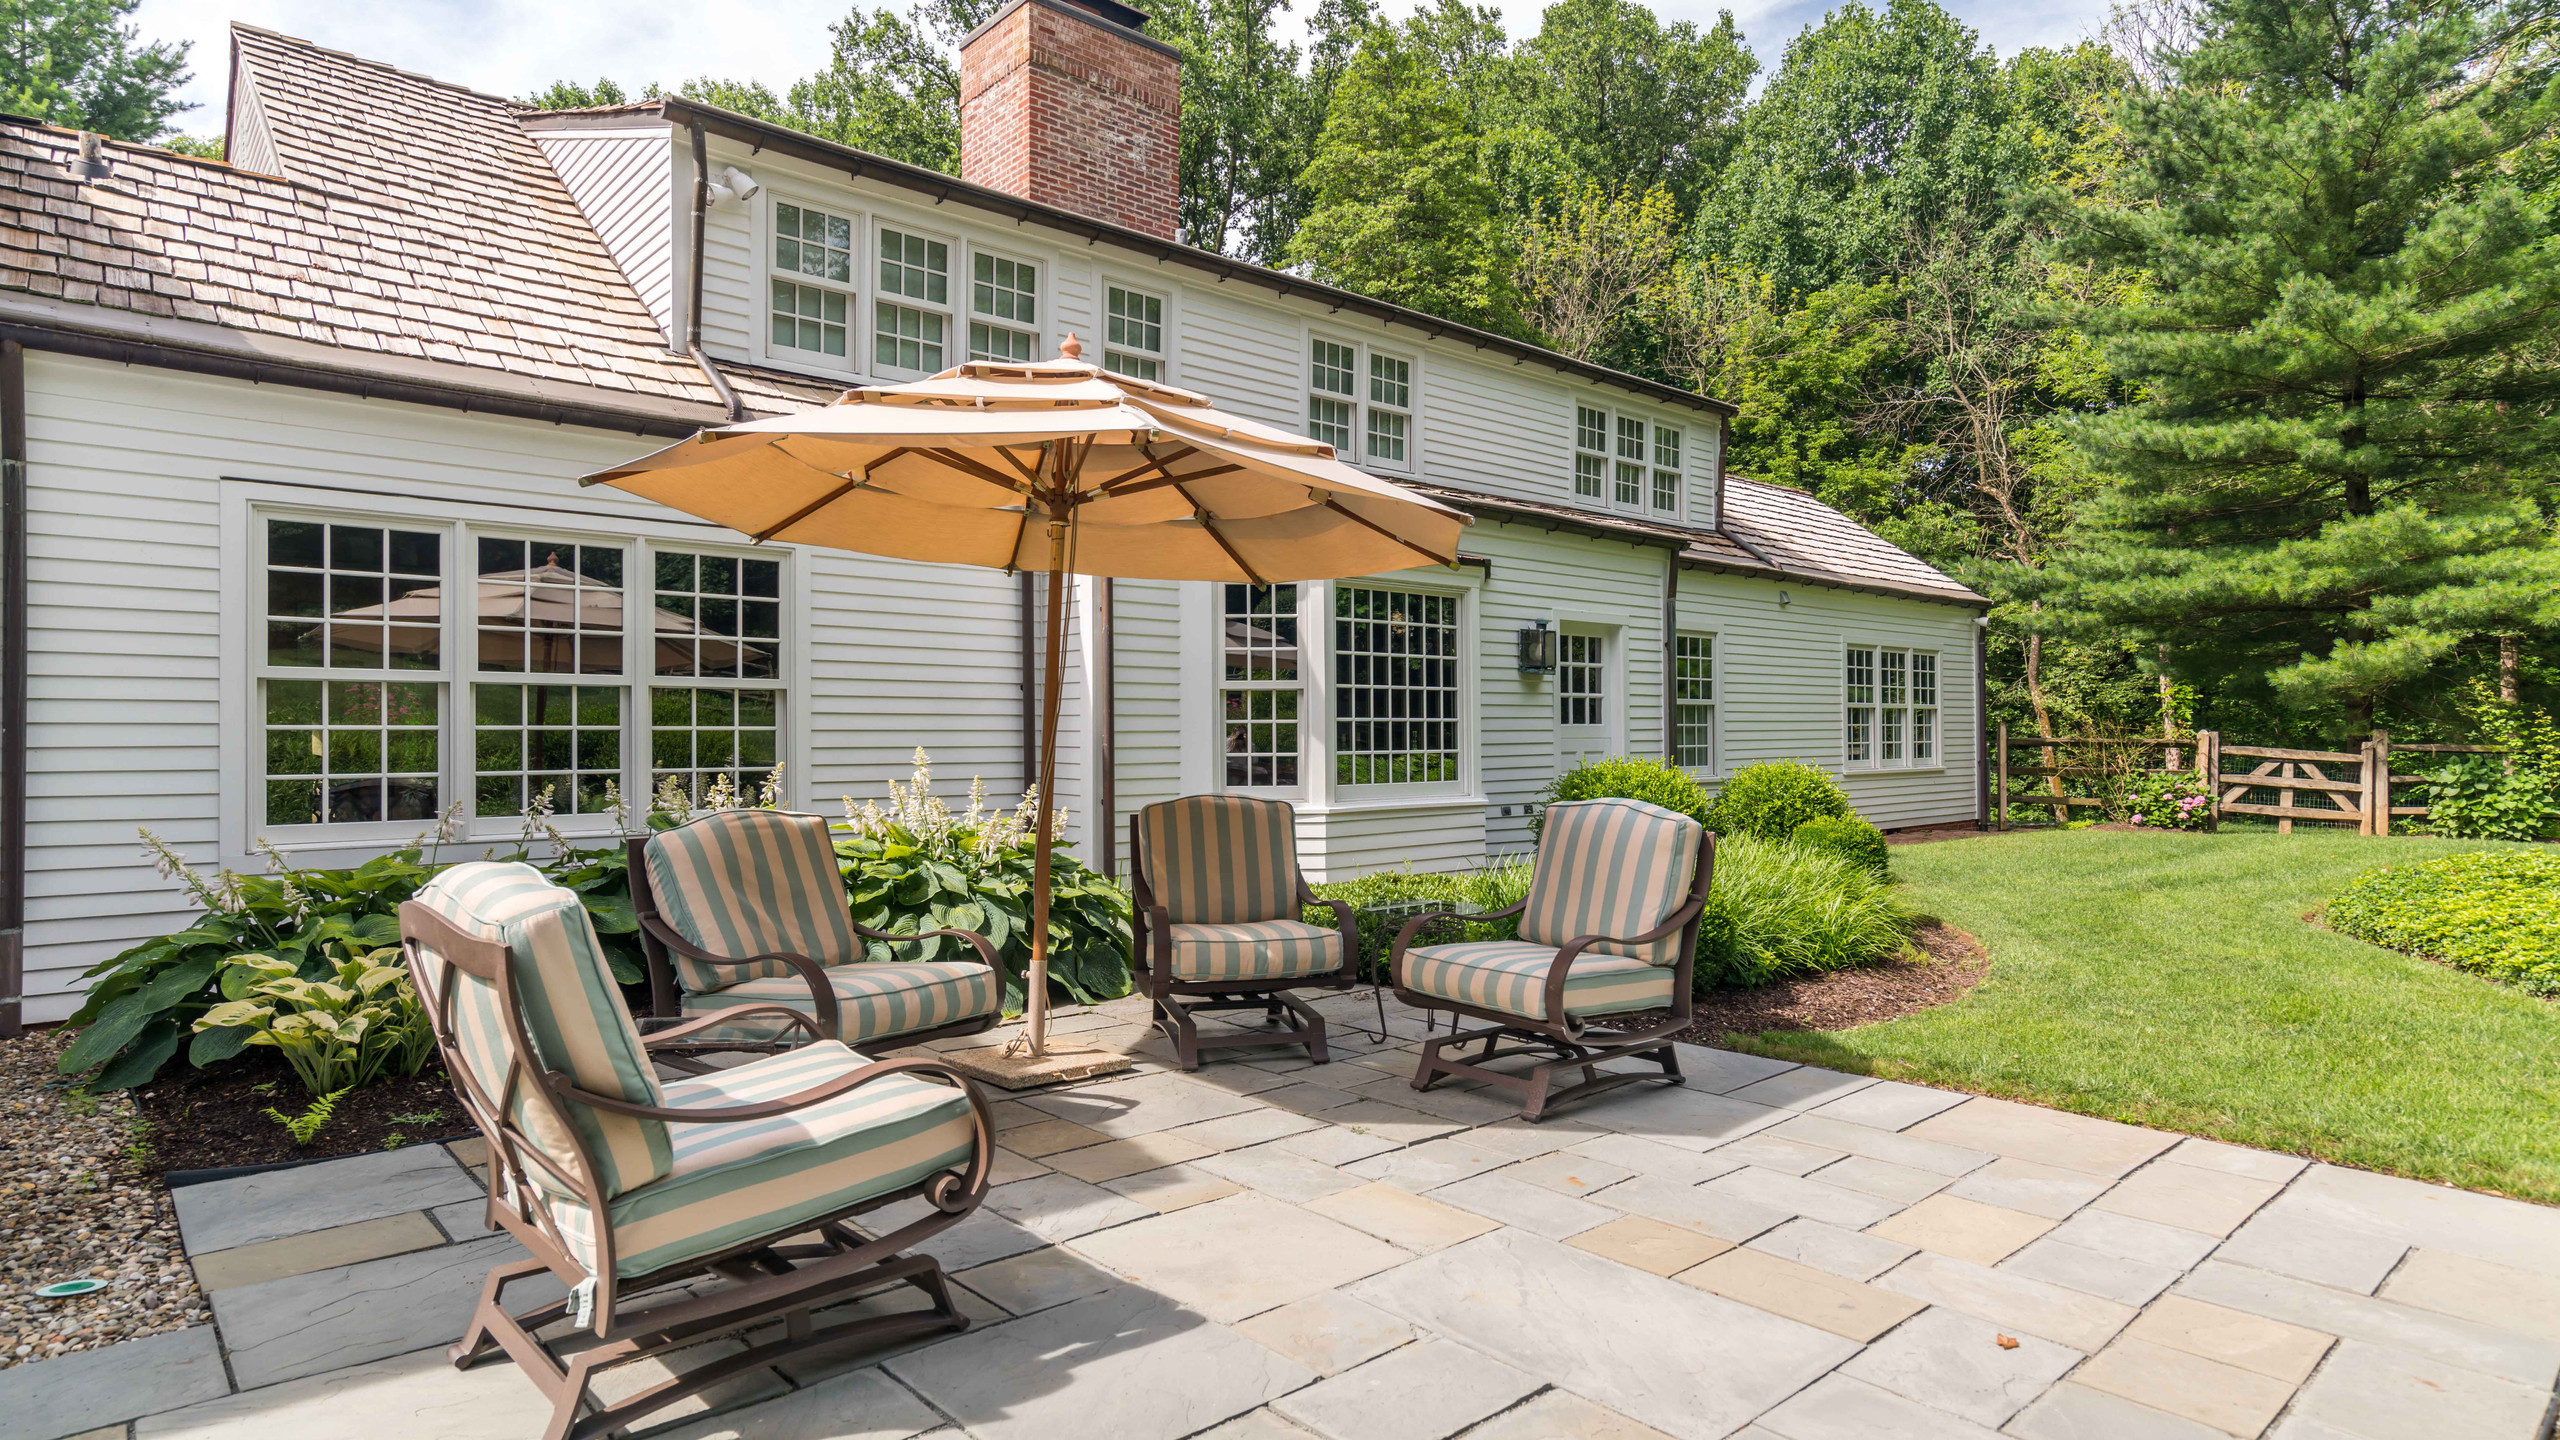 Patios and Gardens